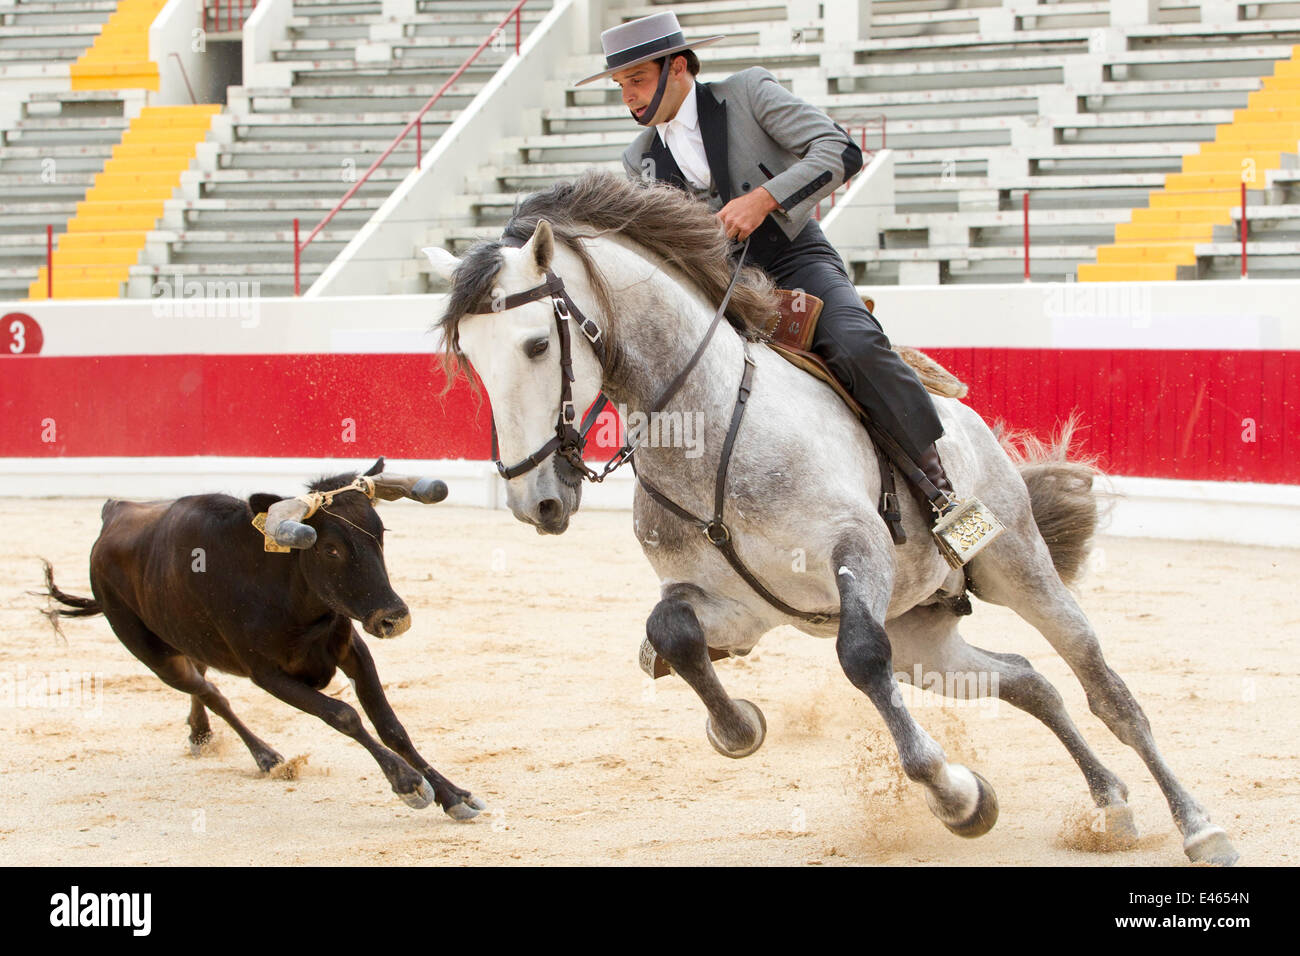 Lusitano horse, bull fighter mounted on grey stallion, in this type of bull fighting neither horse nor bull are - Stock Image